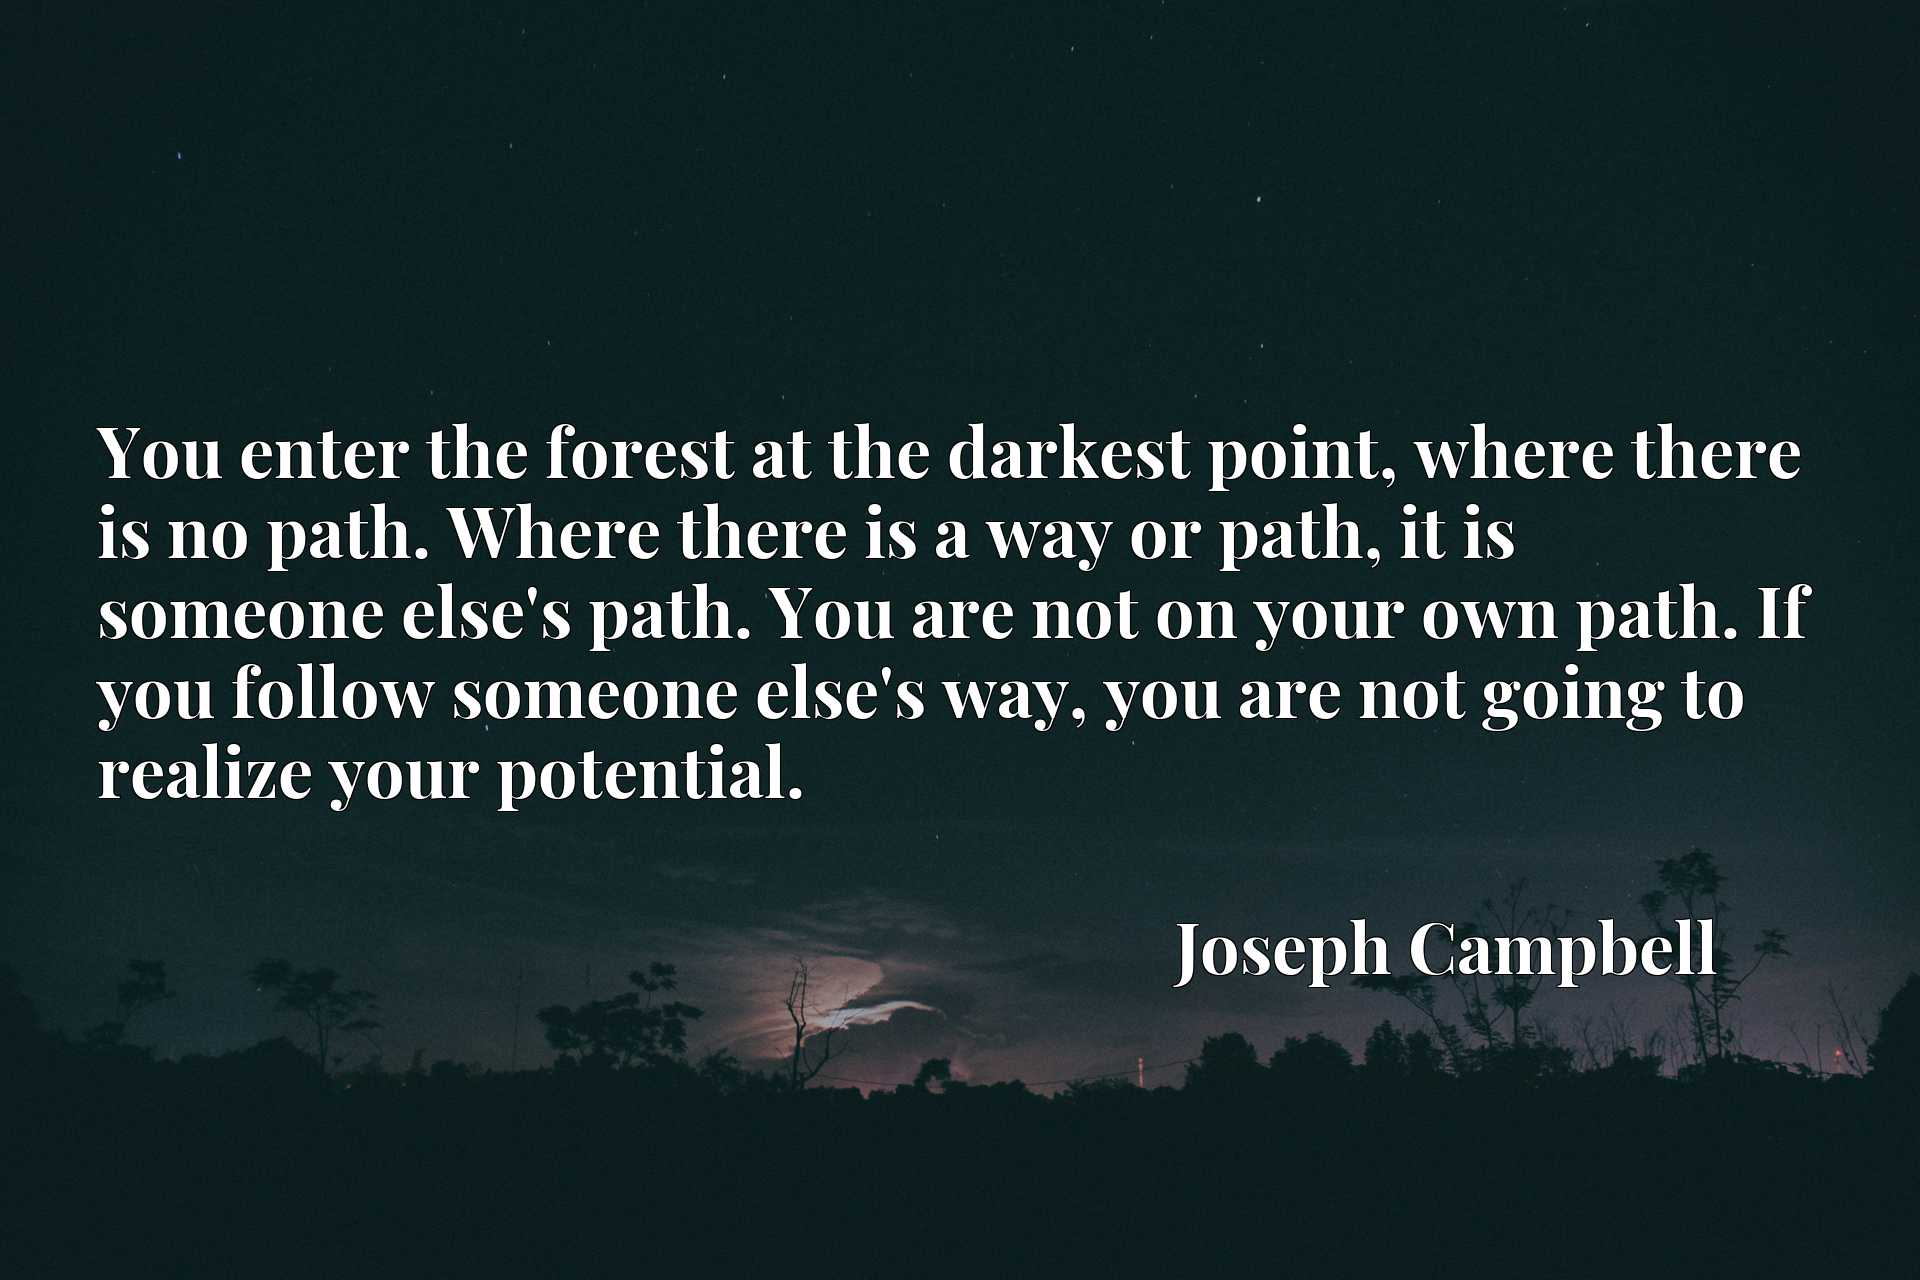 You enter the forest at the darkest point, where there is no path. Where there is a way or path, it is someone else's path. You are not on your own path. If you follow someone else's way, you are not going to realize your potential.